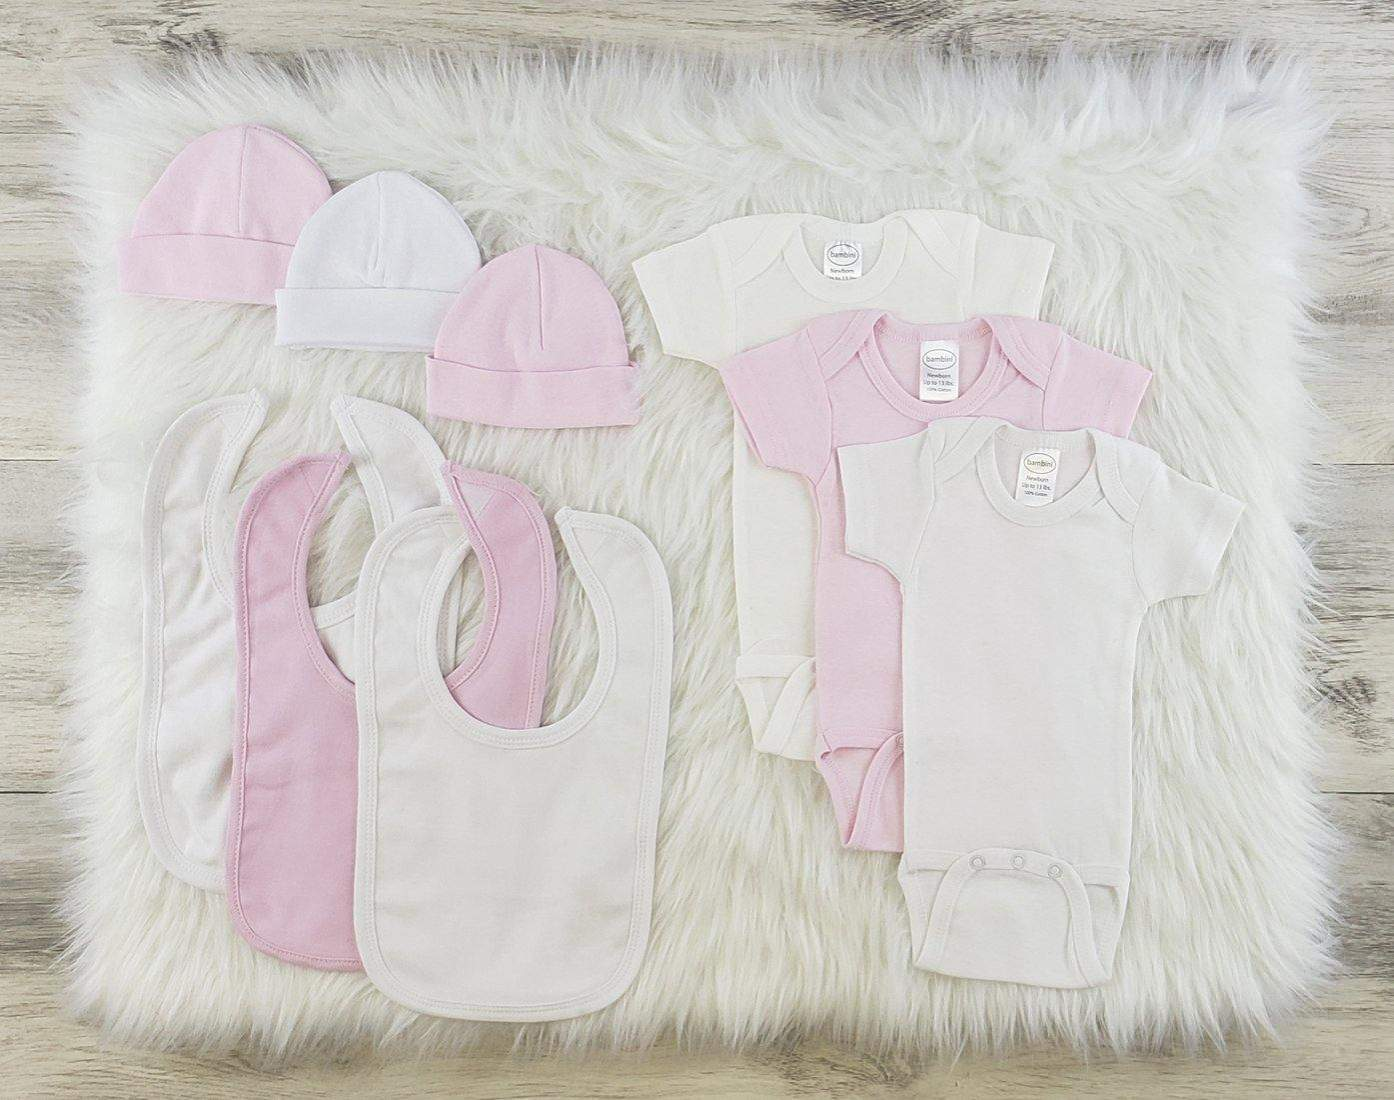 Bambini 9 Pc Girl Layette Bibs, Beanies, Onesies Baby Clothes Set (NB,S,M,L)